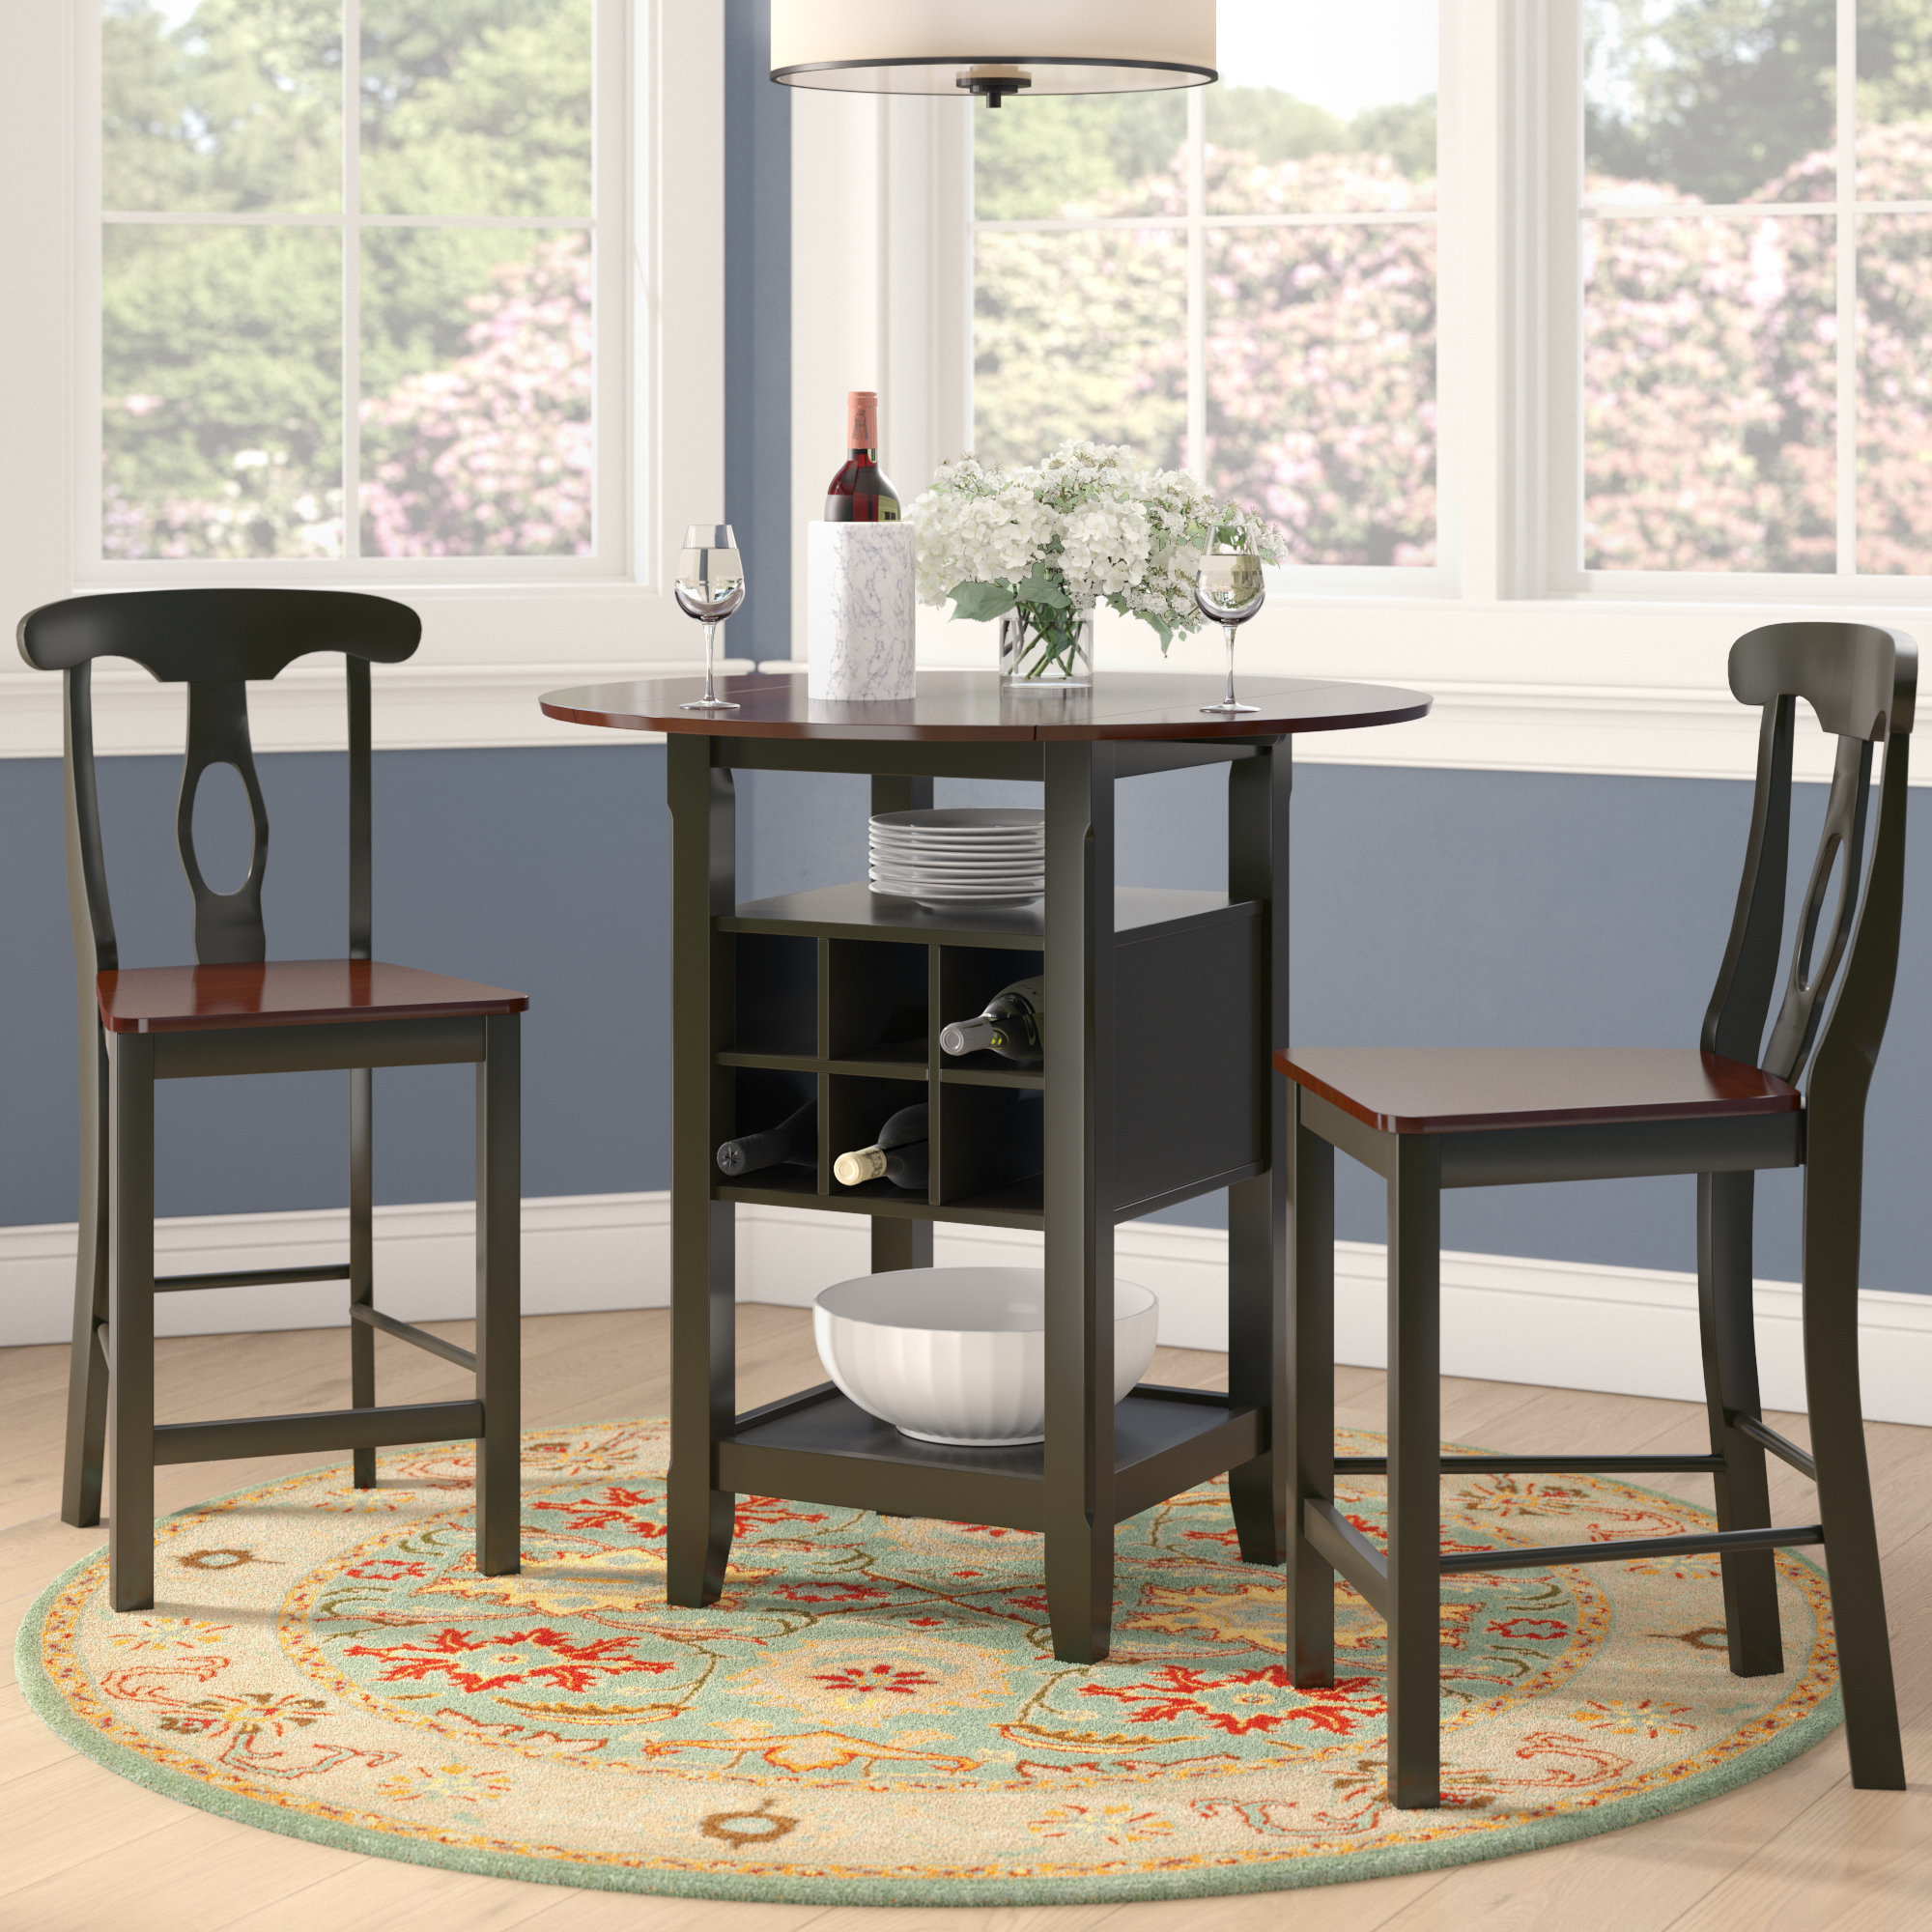 2020 Hood Canal 3 Piece Dining Sets throughout Charlton Home Teneyck 3 Piece Counter Height Pub Table Set & Reviews